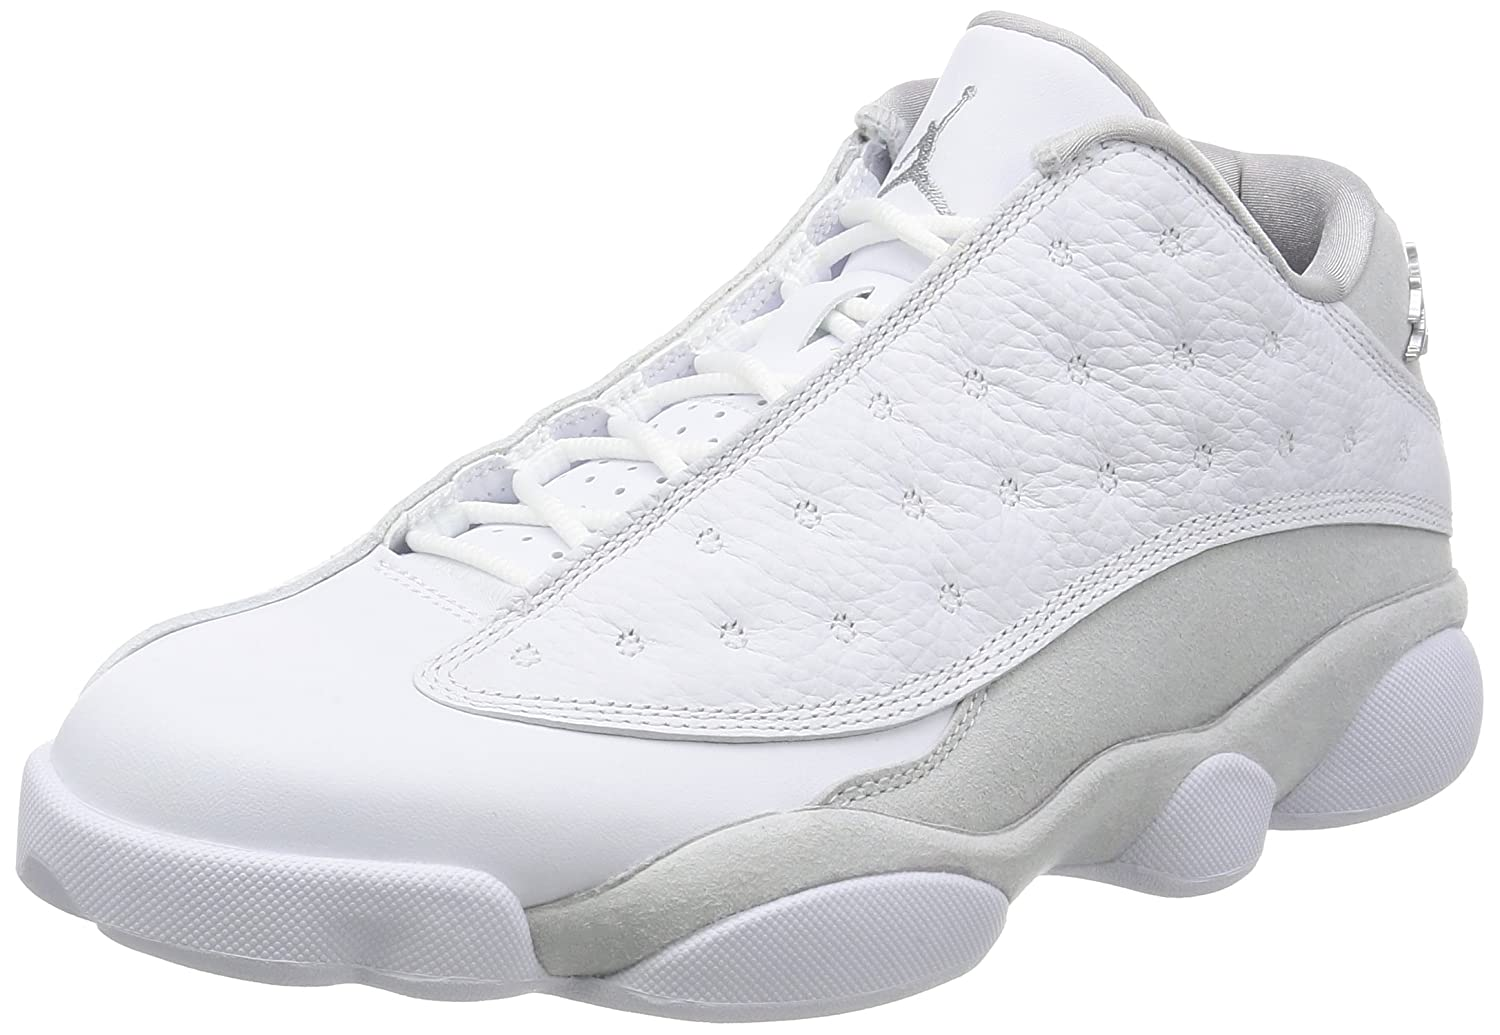 meet a2bf6 648d9 Amazon.com   Air Jordan 13 Retro Low